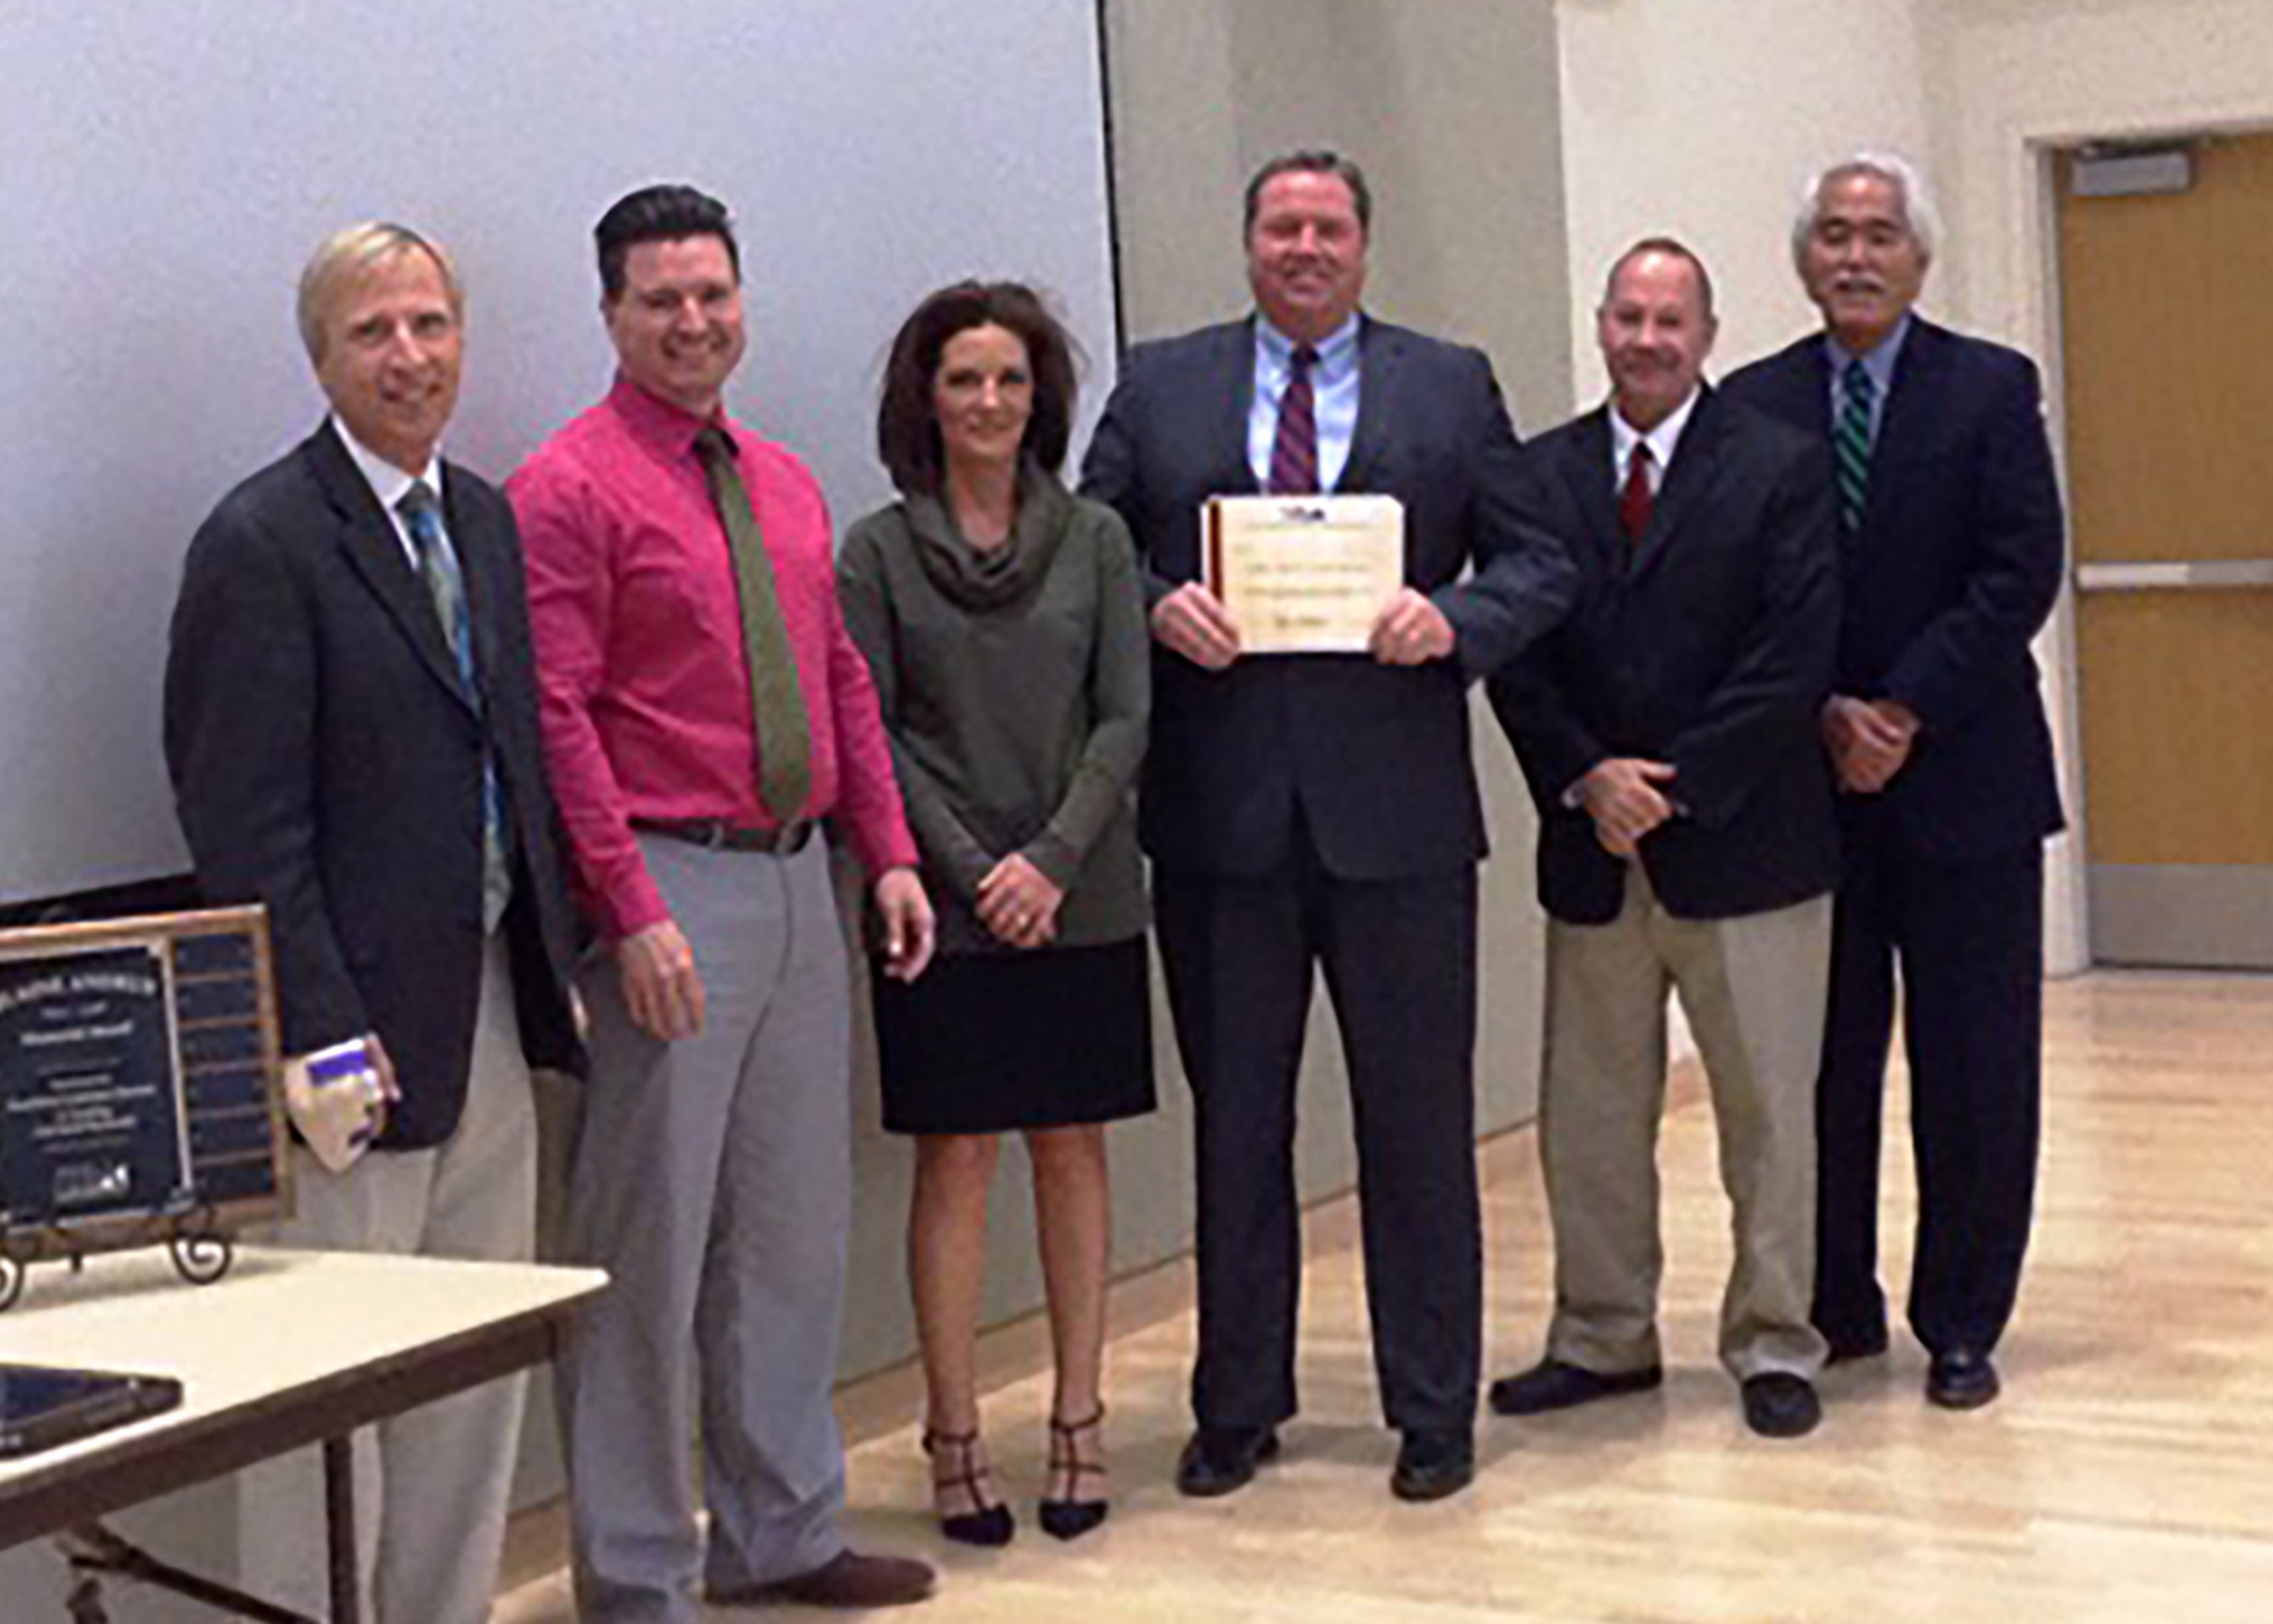 Left to right - Karl Wernick, Lender Relations Specialist, SBA; Ted Elliott, Lender Relations Specialist, SBA; Lana Waldron, VP Commercial Credit Operations, Celtic Bank; Wade Newman, President, Celtic Bank; Brad Bybee, Chief Lending Officer, Celtic Bank; Stan Nakano, District Director, SBA